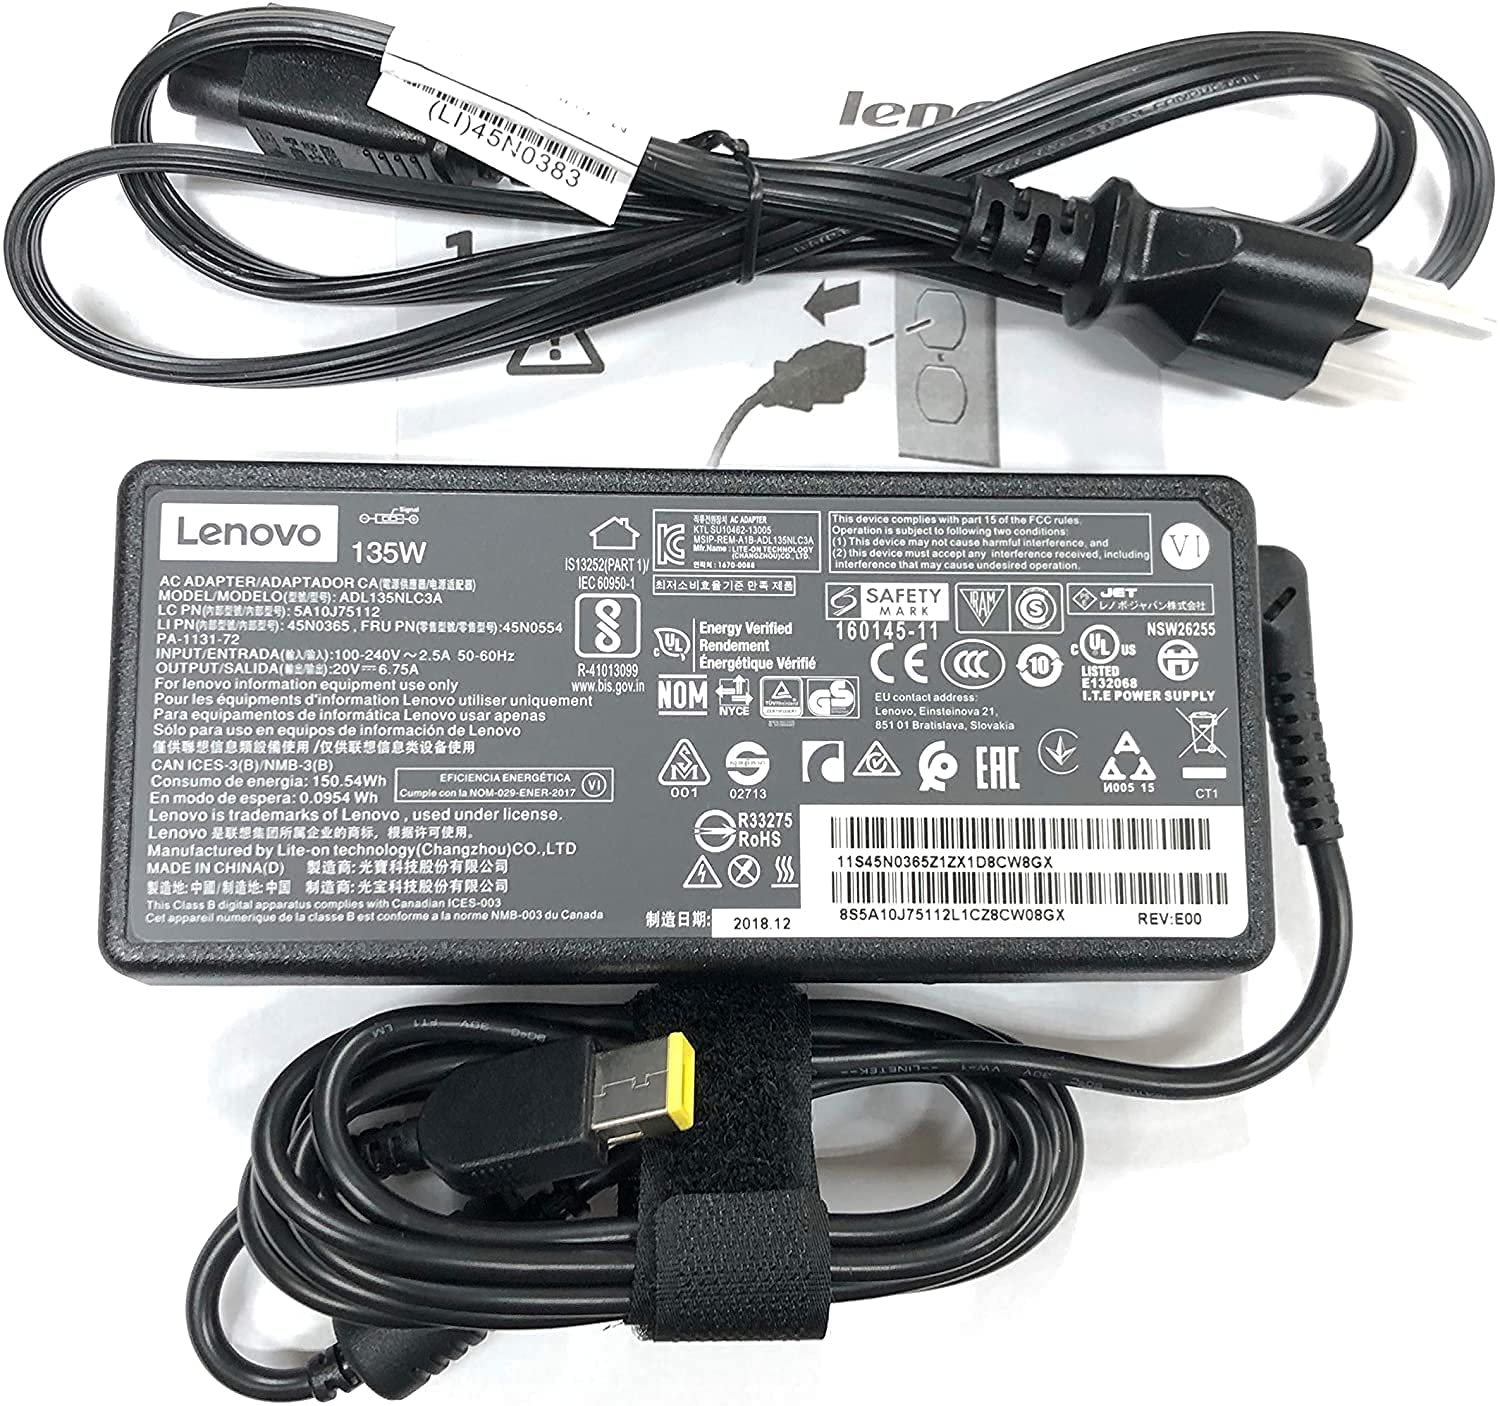 New Columbus Mall Genuine Laptop store Charger 135W Tip Slim 6.75A ADL135NDC3A 20V